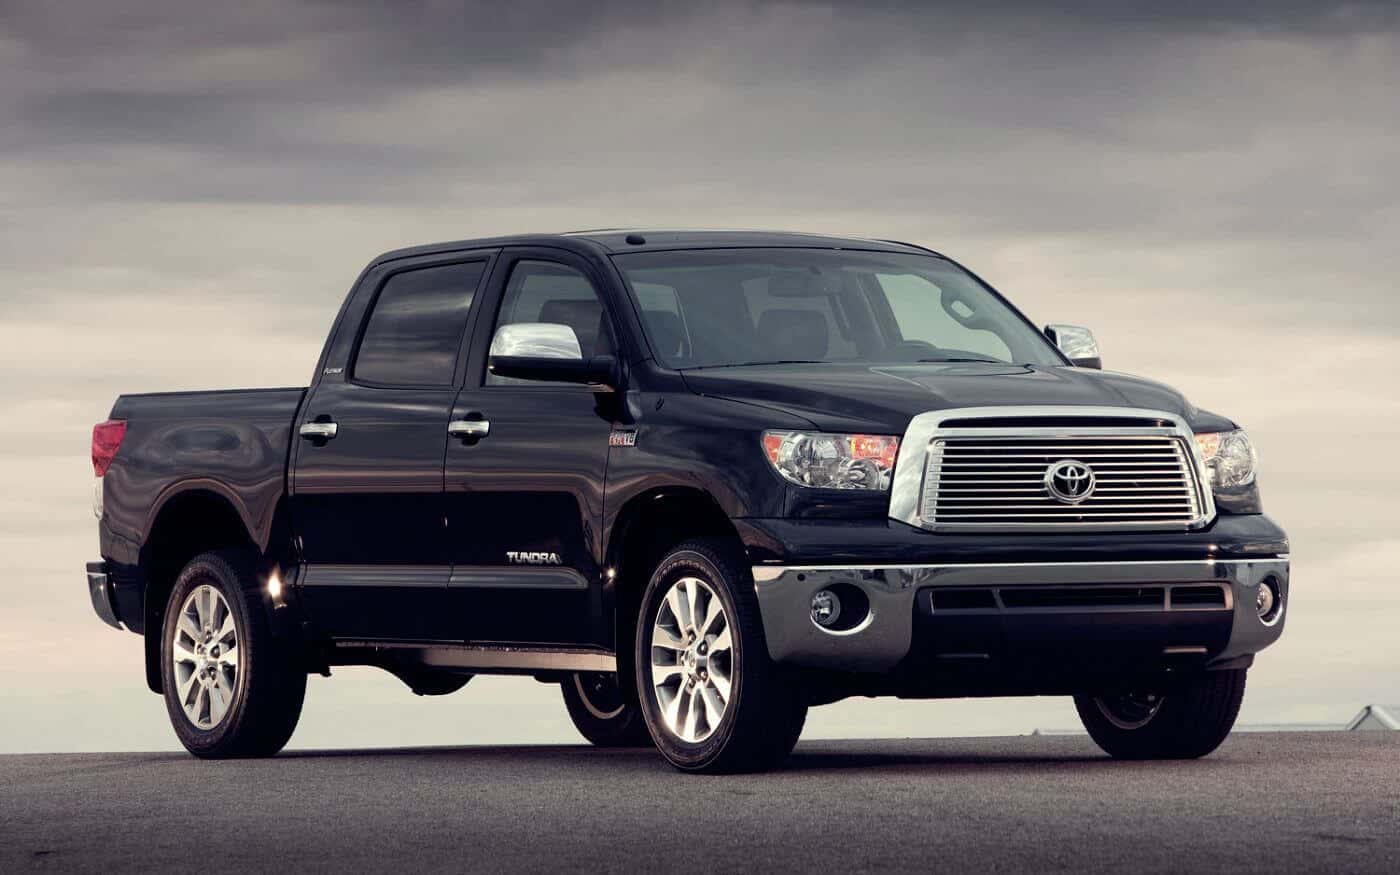 2019 Toyota Tundra Reviews, Redesign & Release Date - CarsSumo